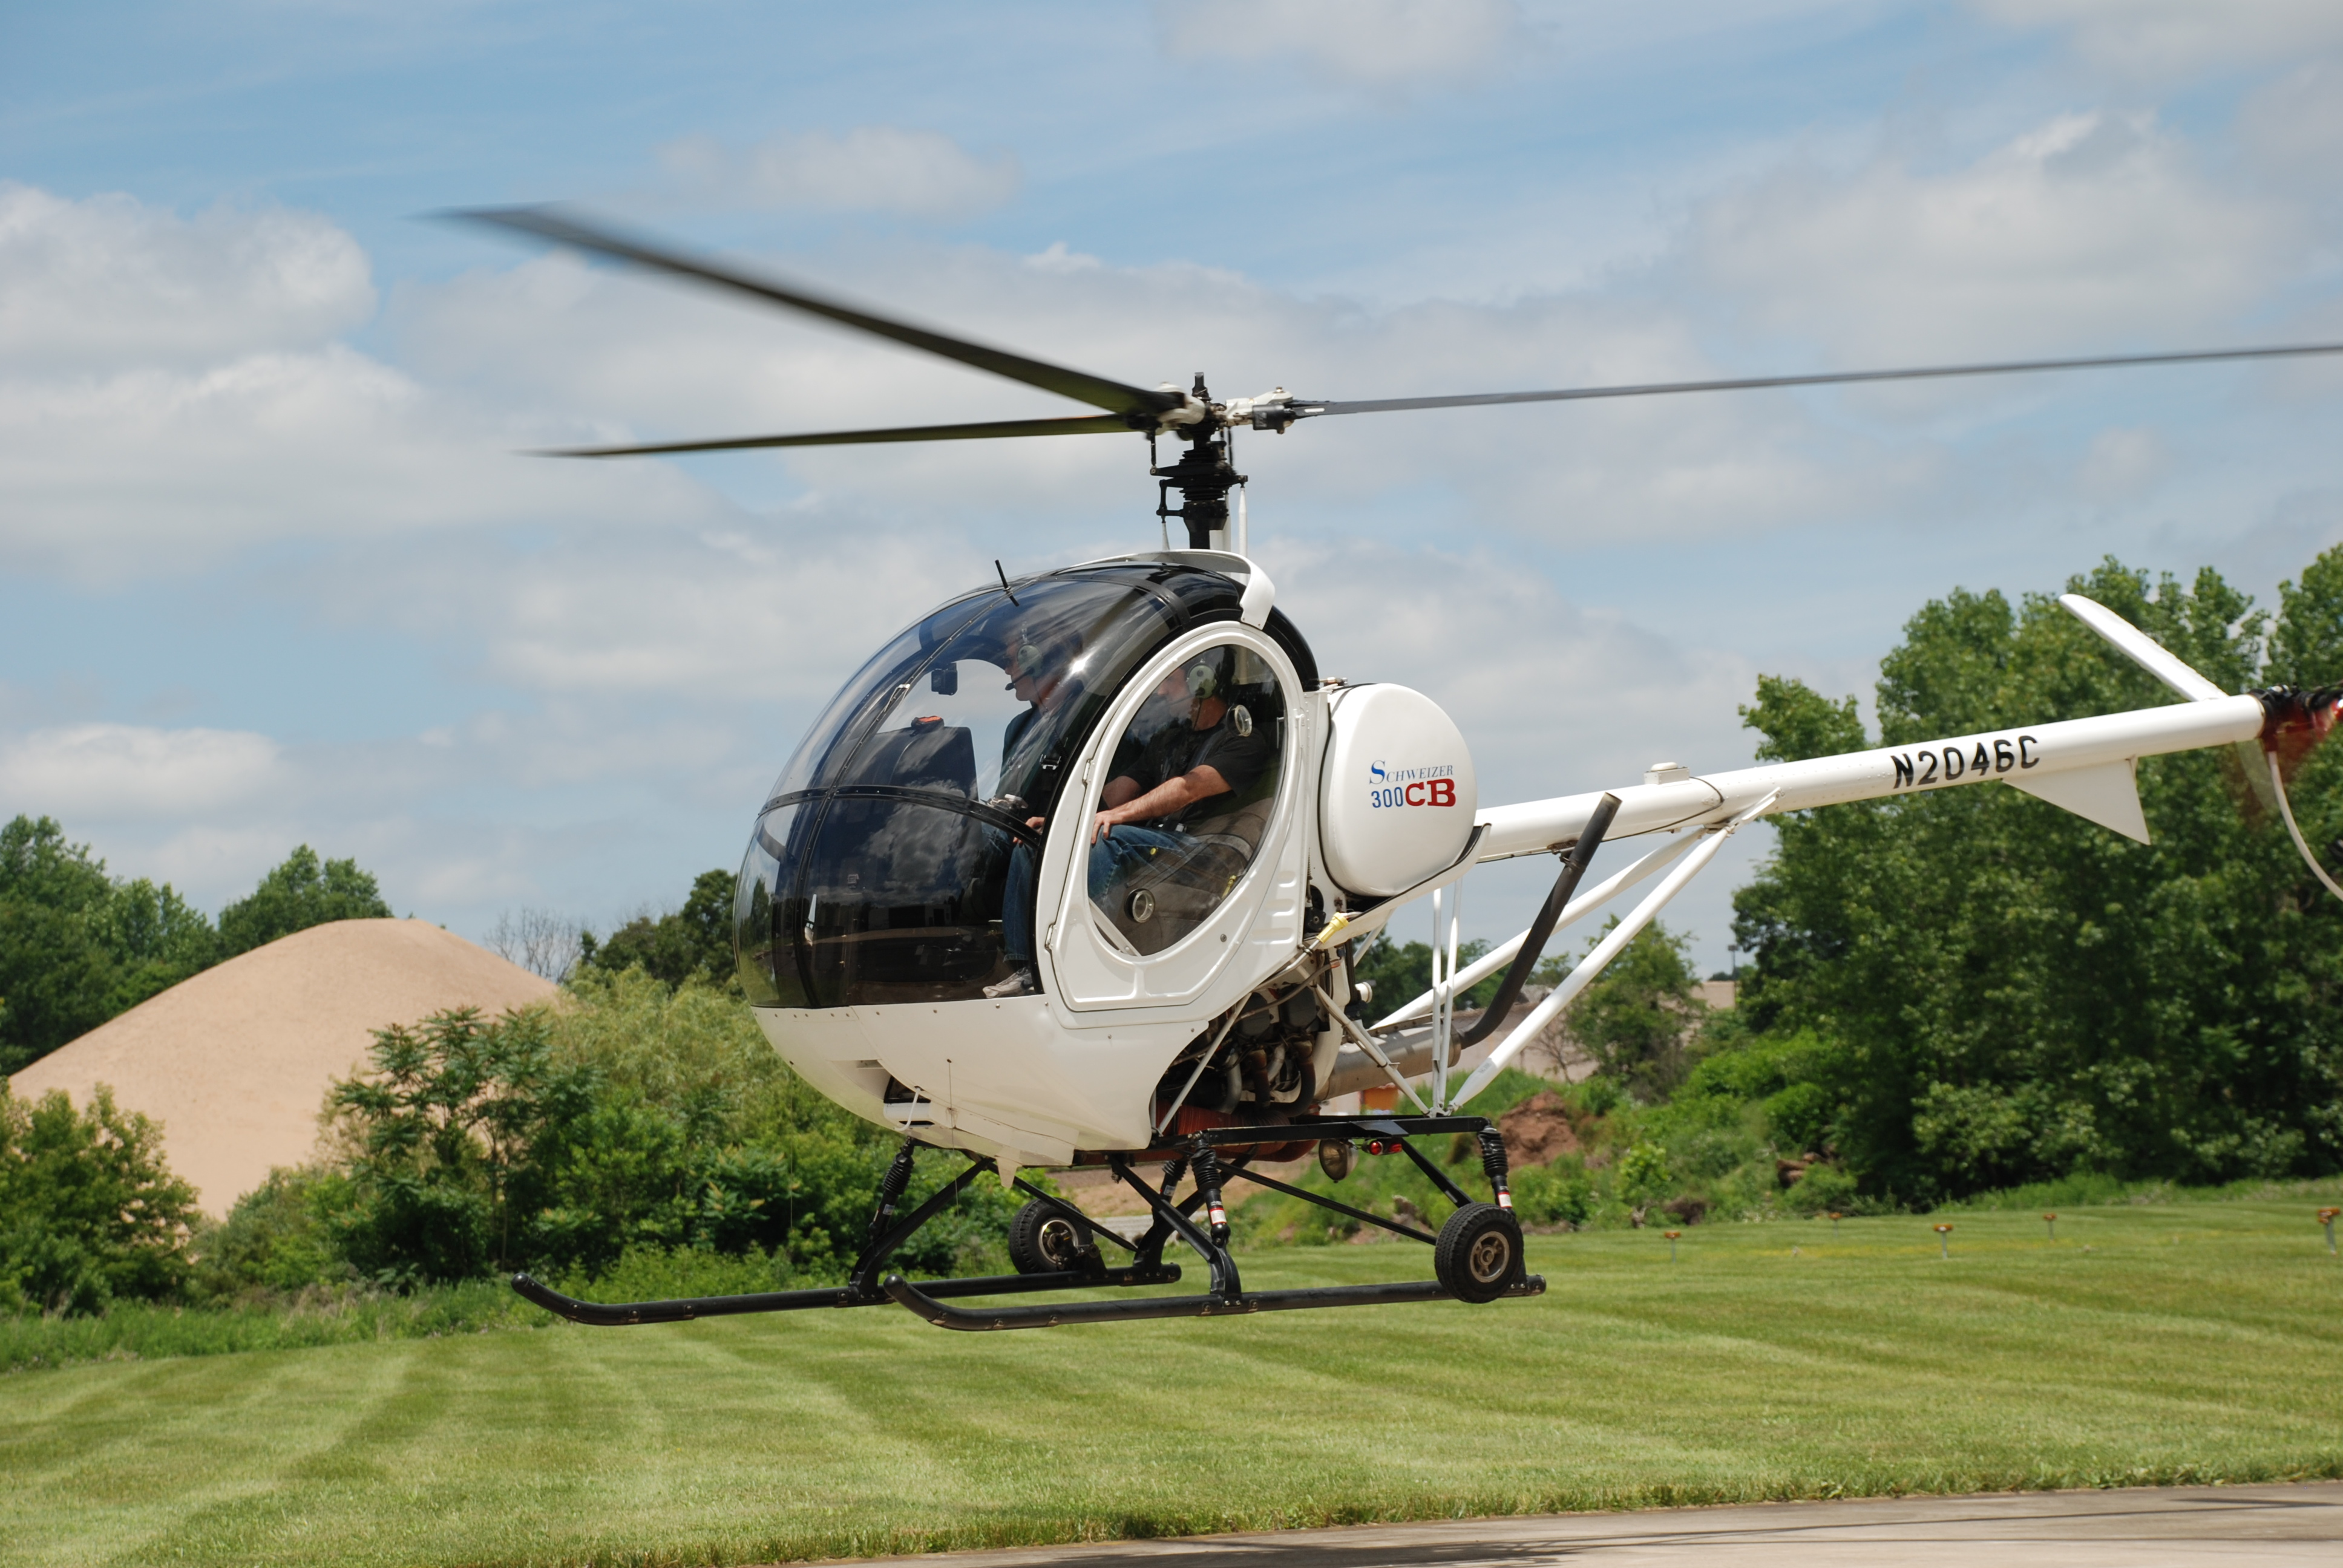 2013 Helicopter/UAV Workshop Applications and Forms